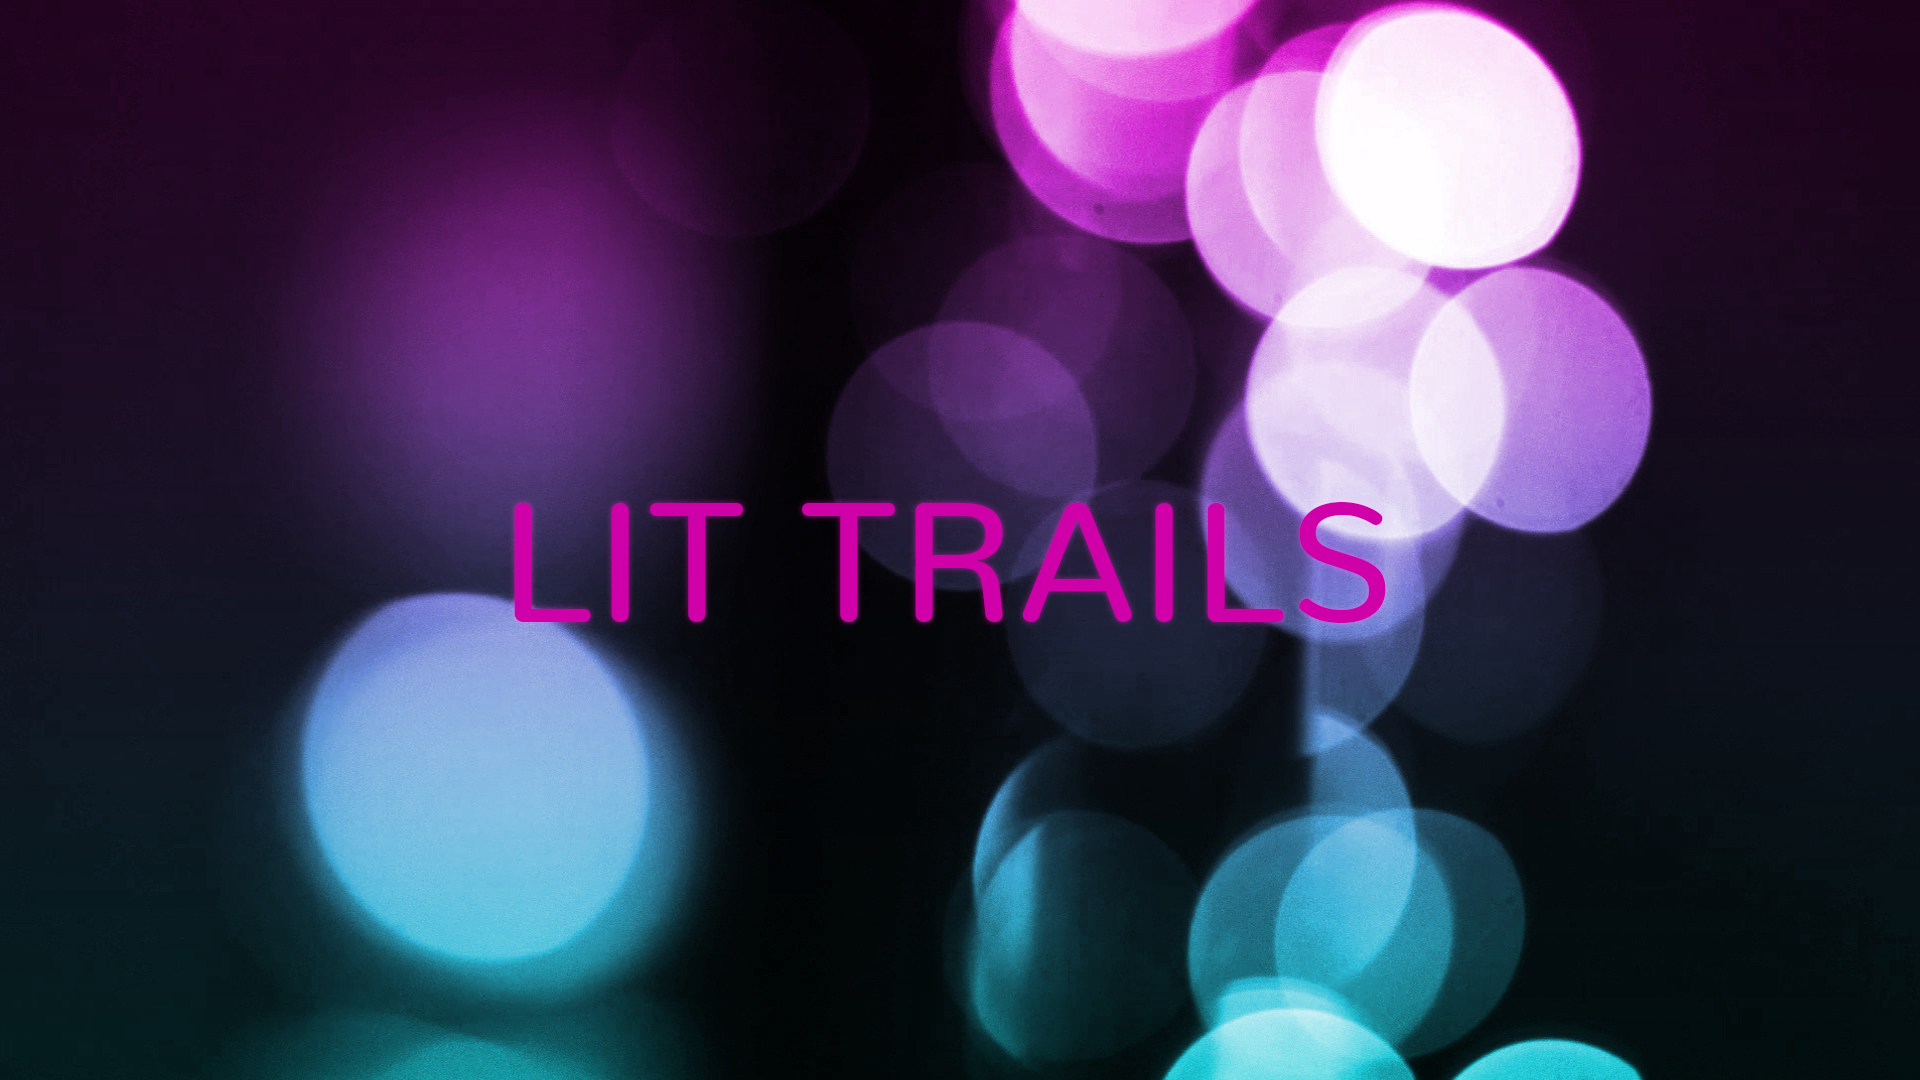 LIT Trails